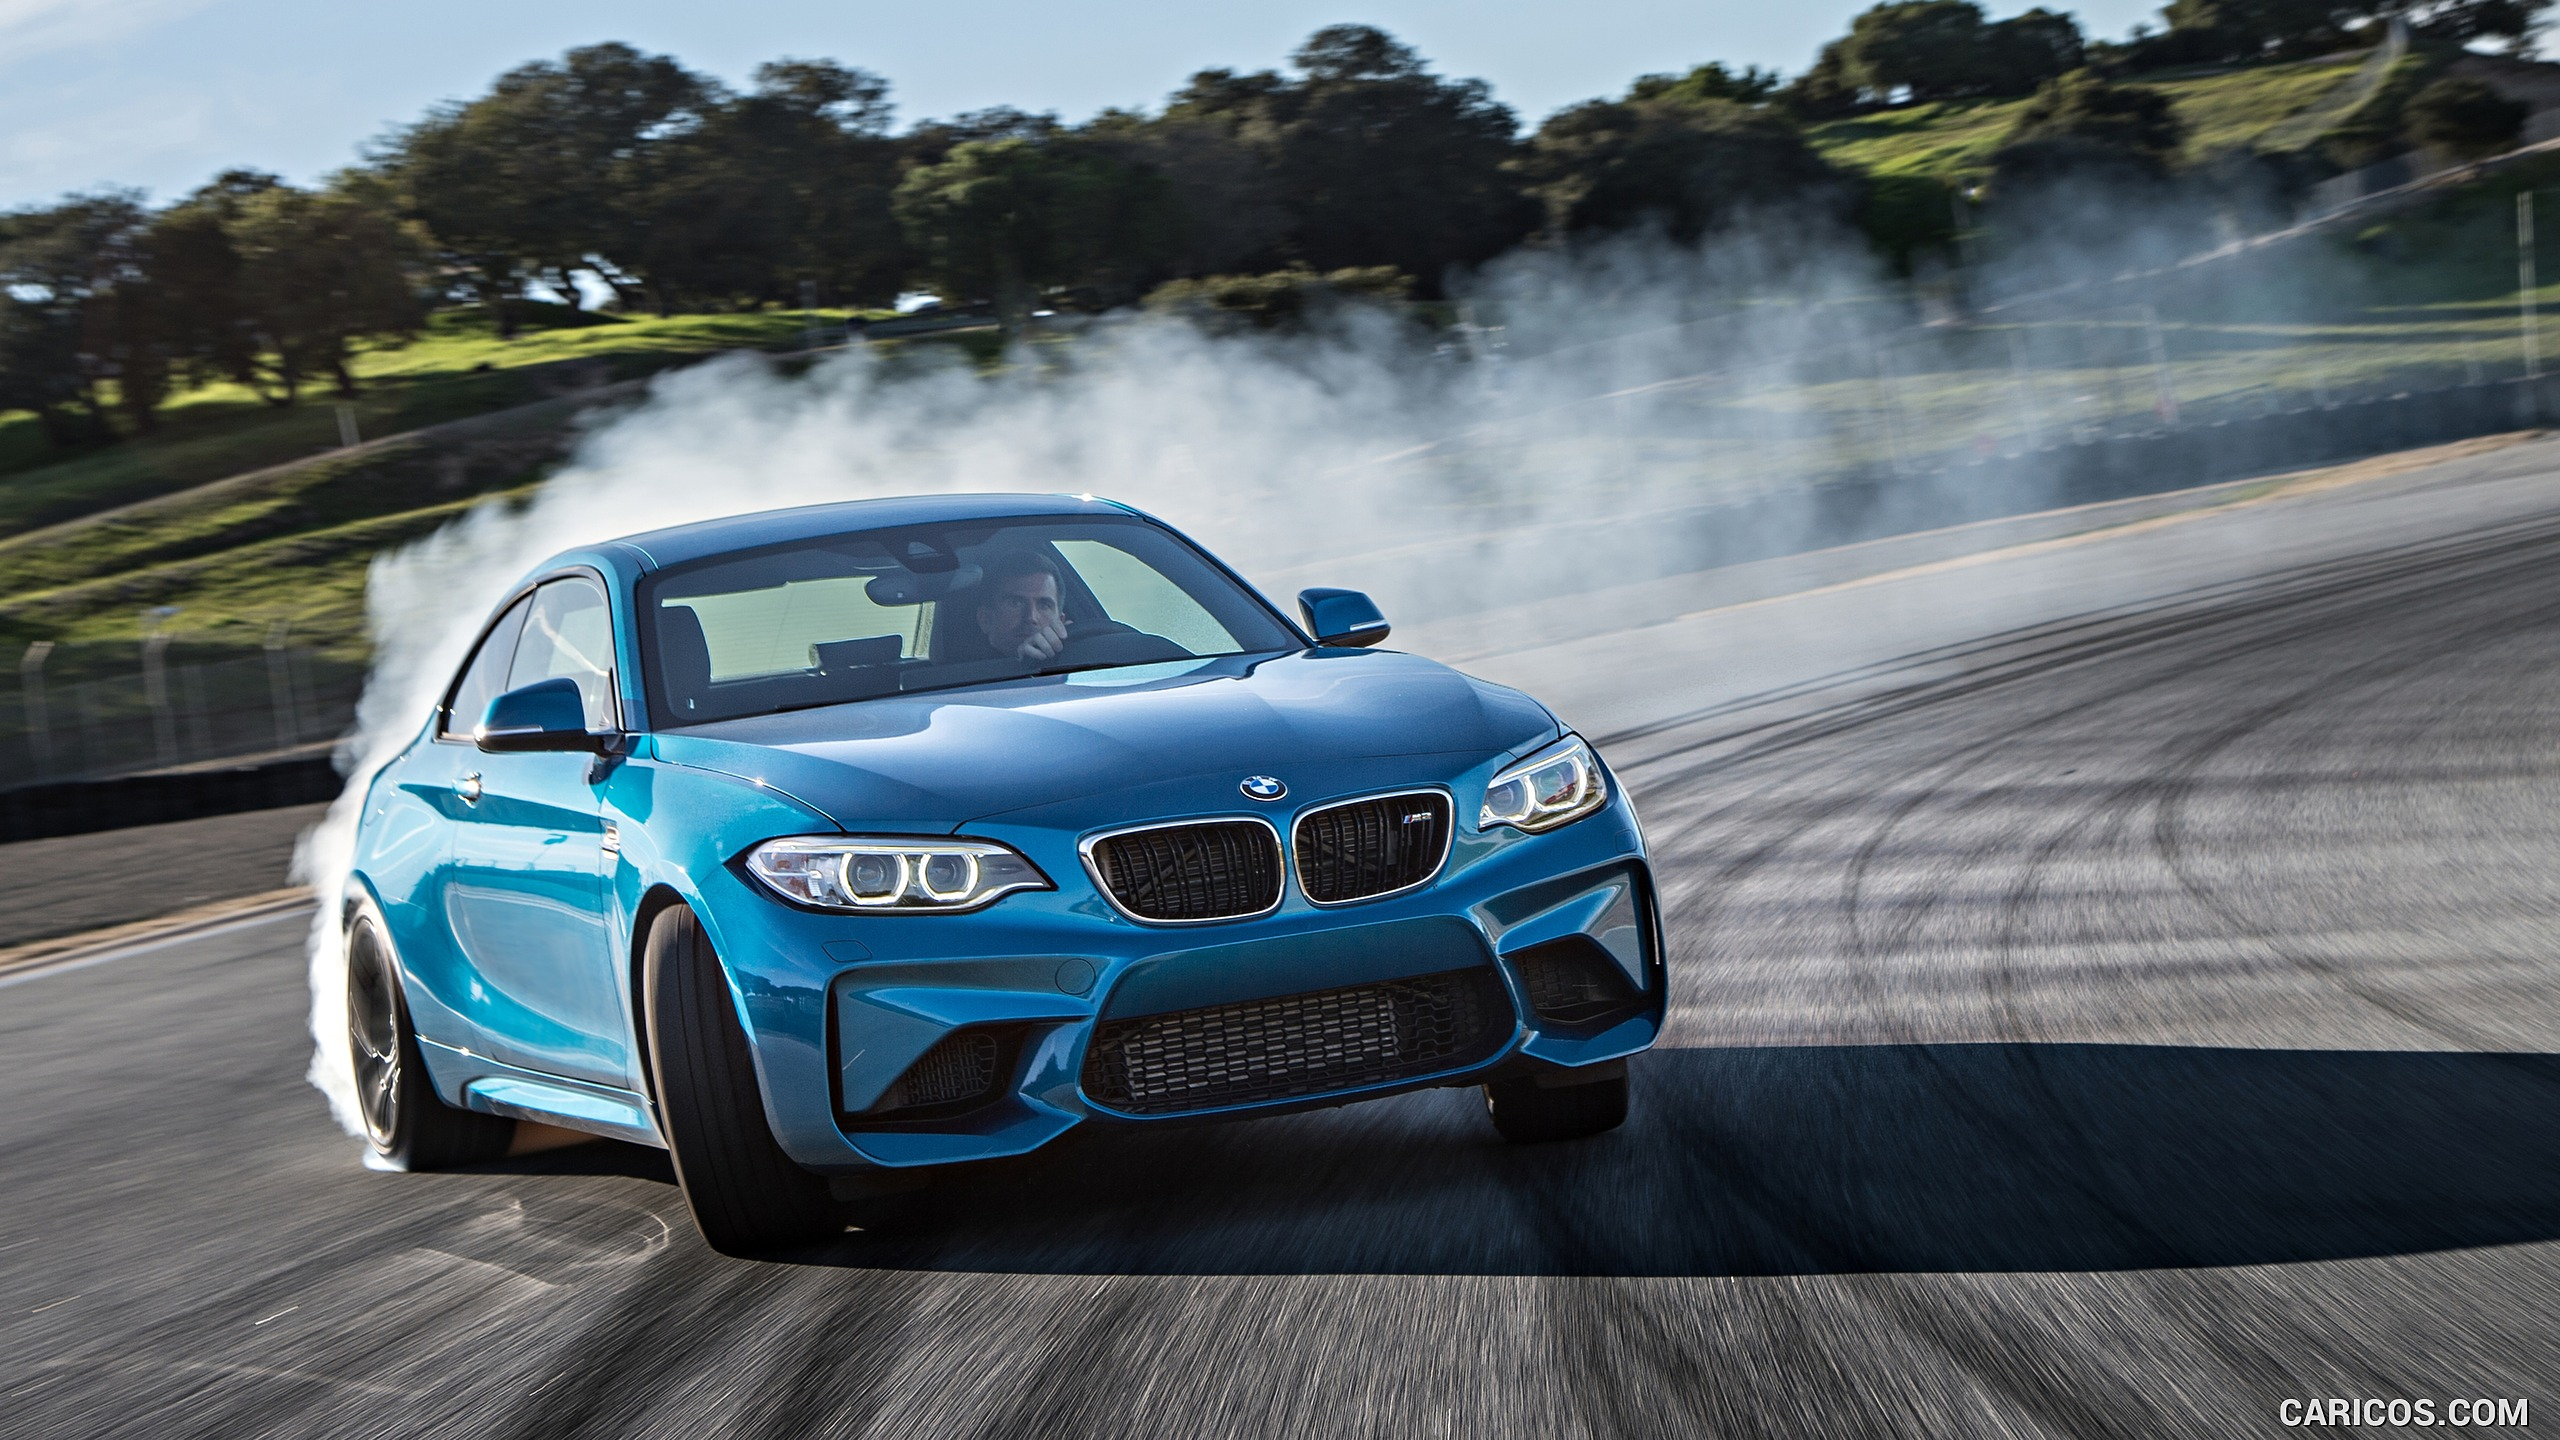 2560x1440 - BMW M2 Coupe Wallpapers 13